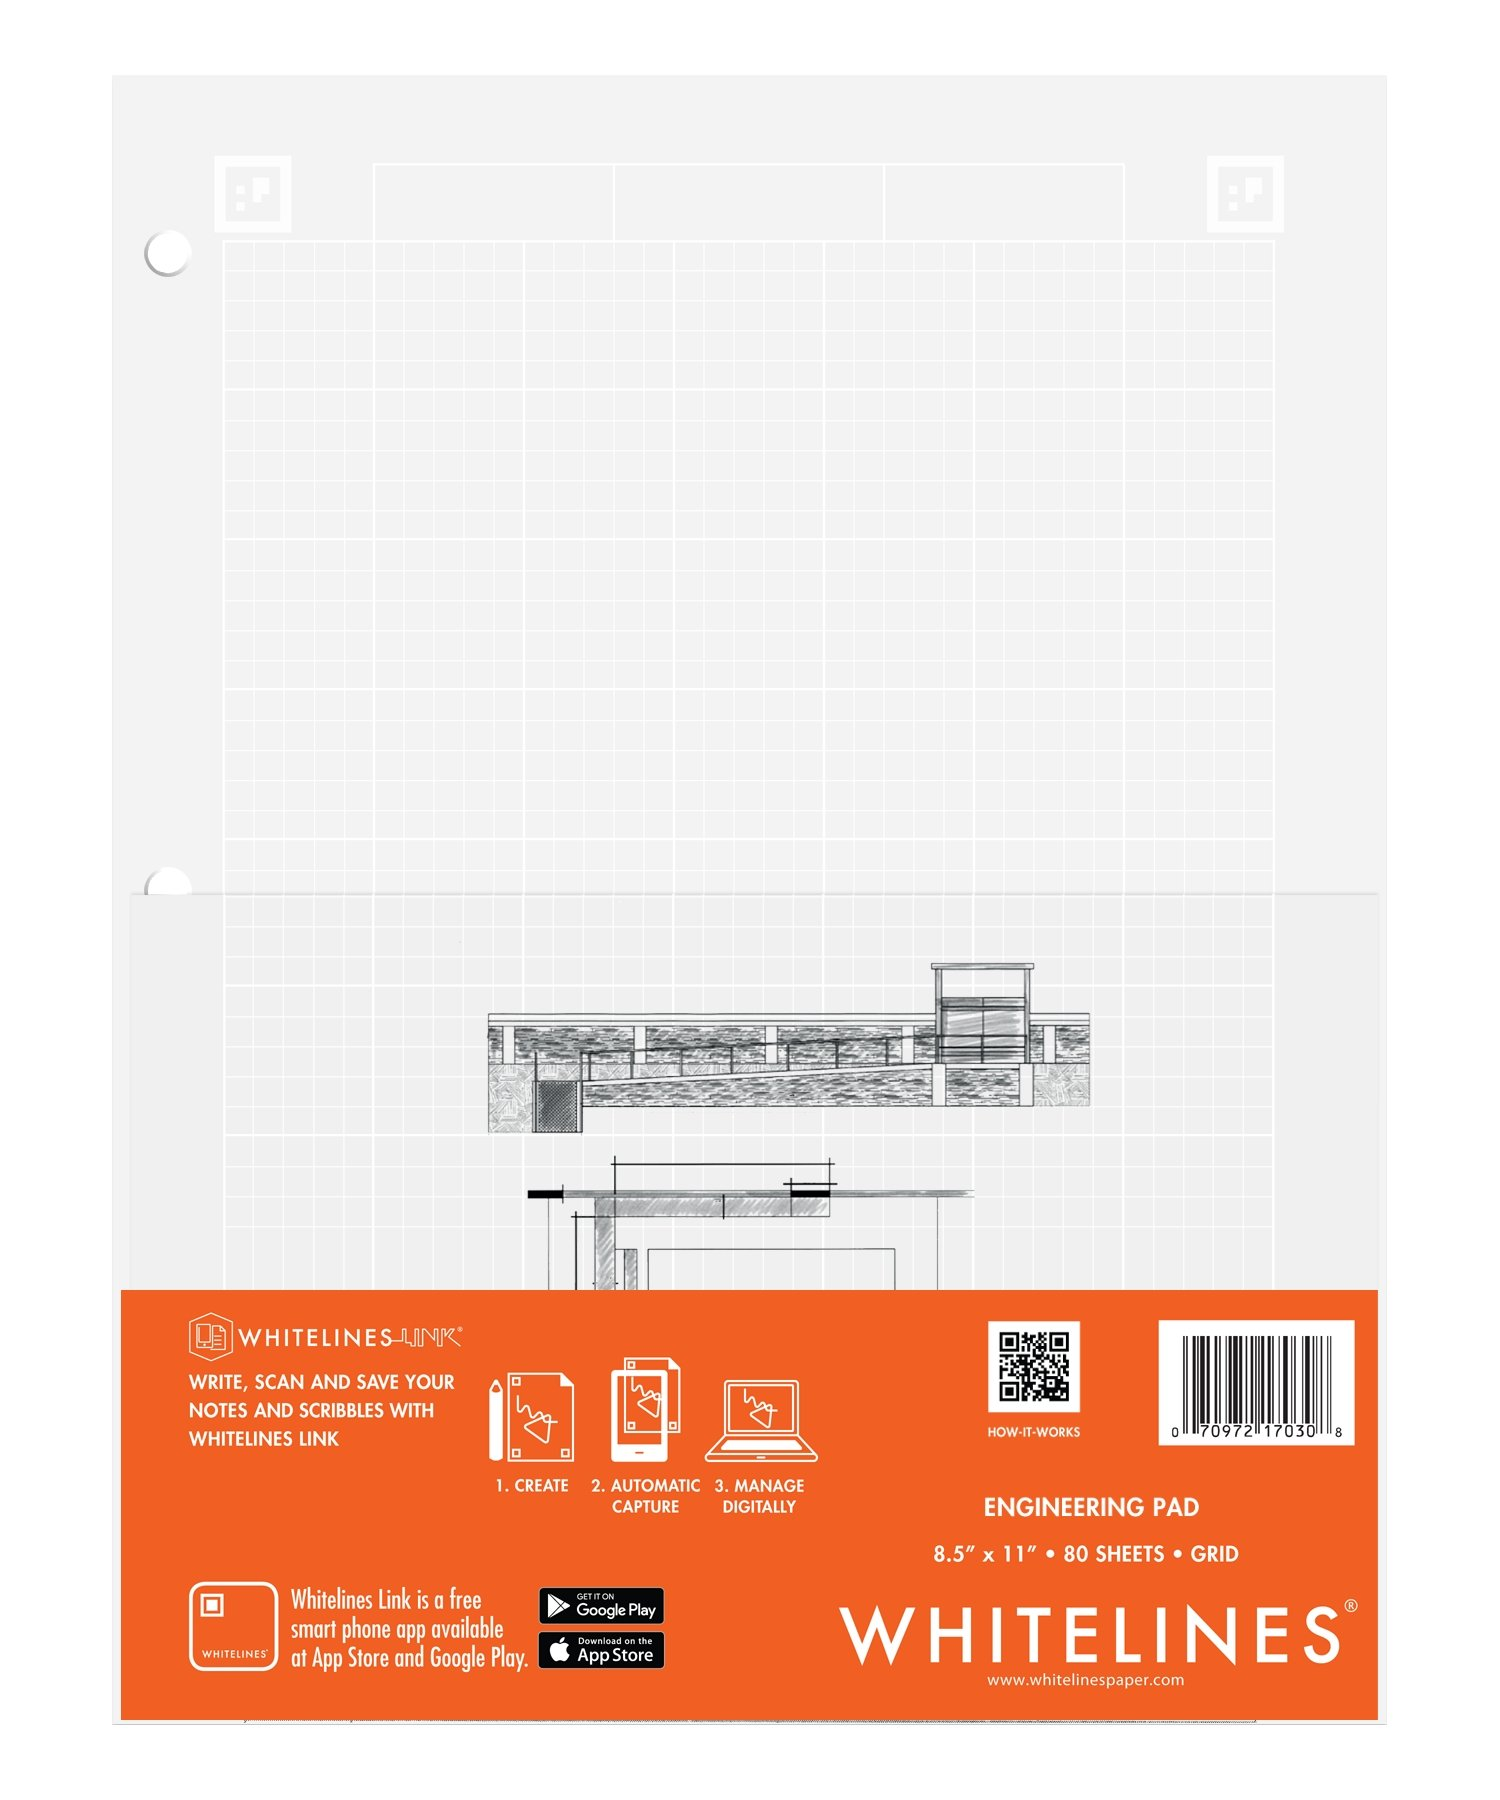 Case of 24 Whitelines App Engineering Computational Pads, 8.5''x11'', Grey Grid White Paper, 80 sheets, 3 Hole punch, Enclosed Grid printing by WhiteLines (Image #13)